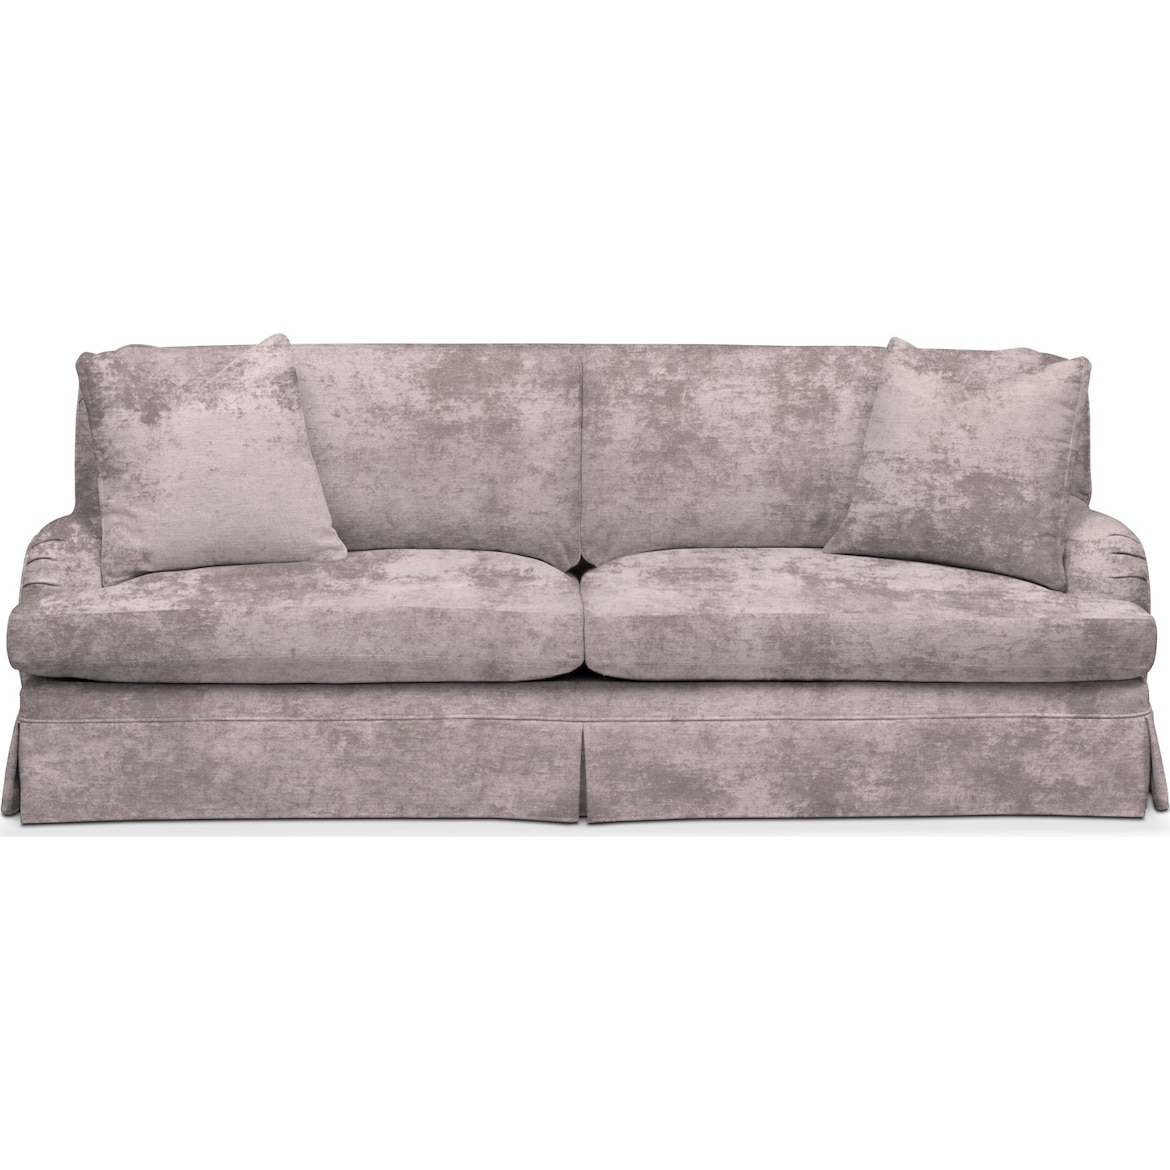 Campbell Sofa By Kroehler